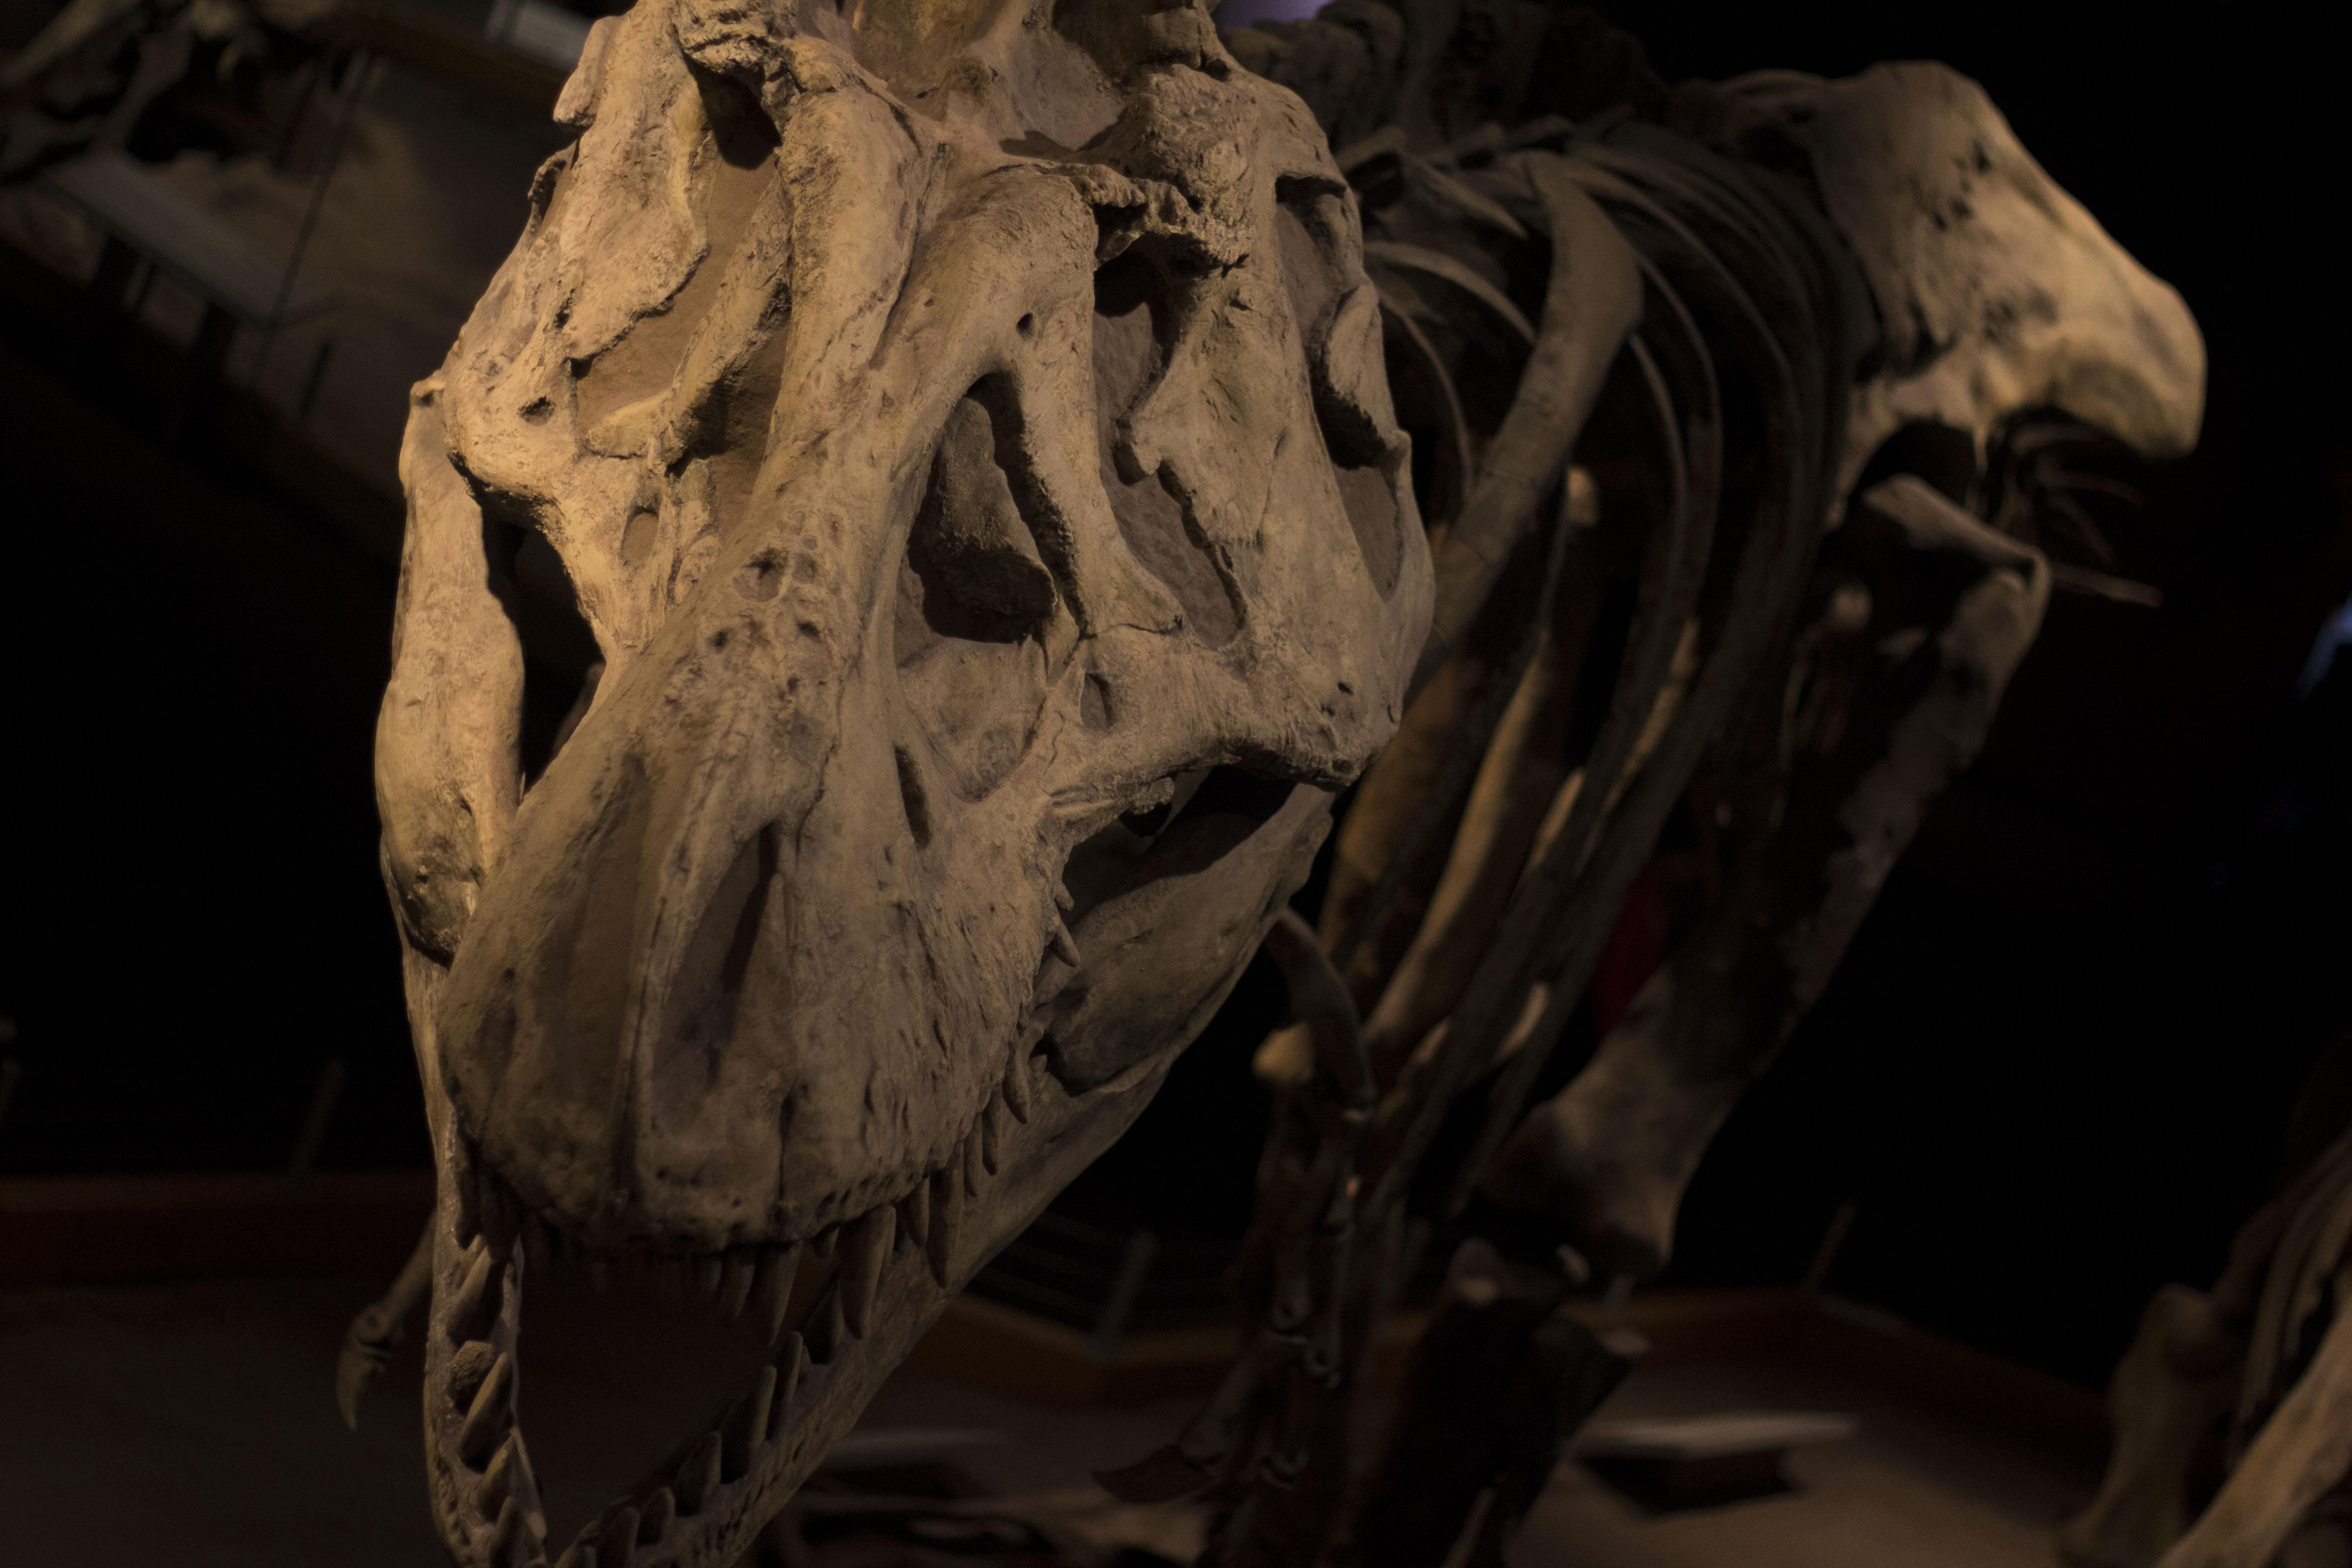 Took This Photo Of A T Rex At The Royal Tyrrell Museum In